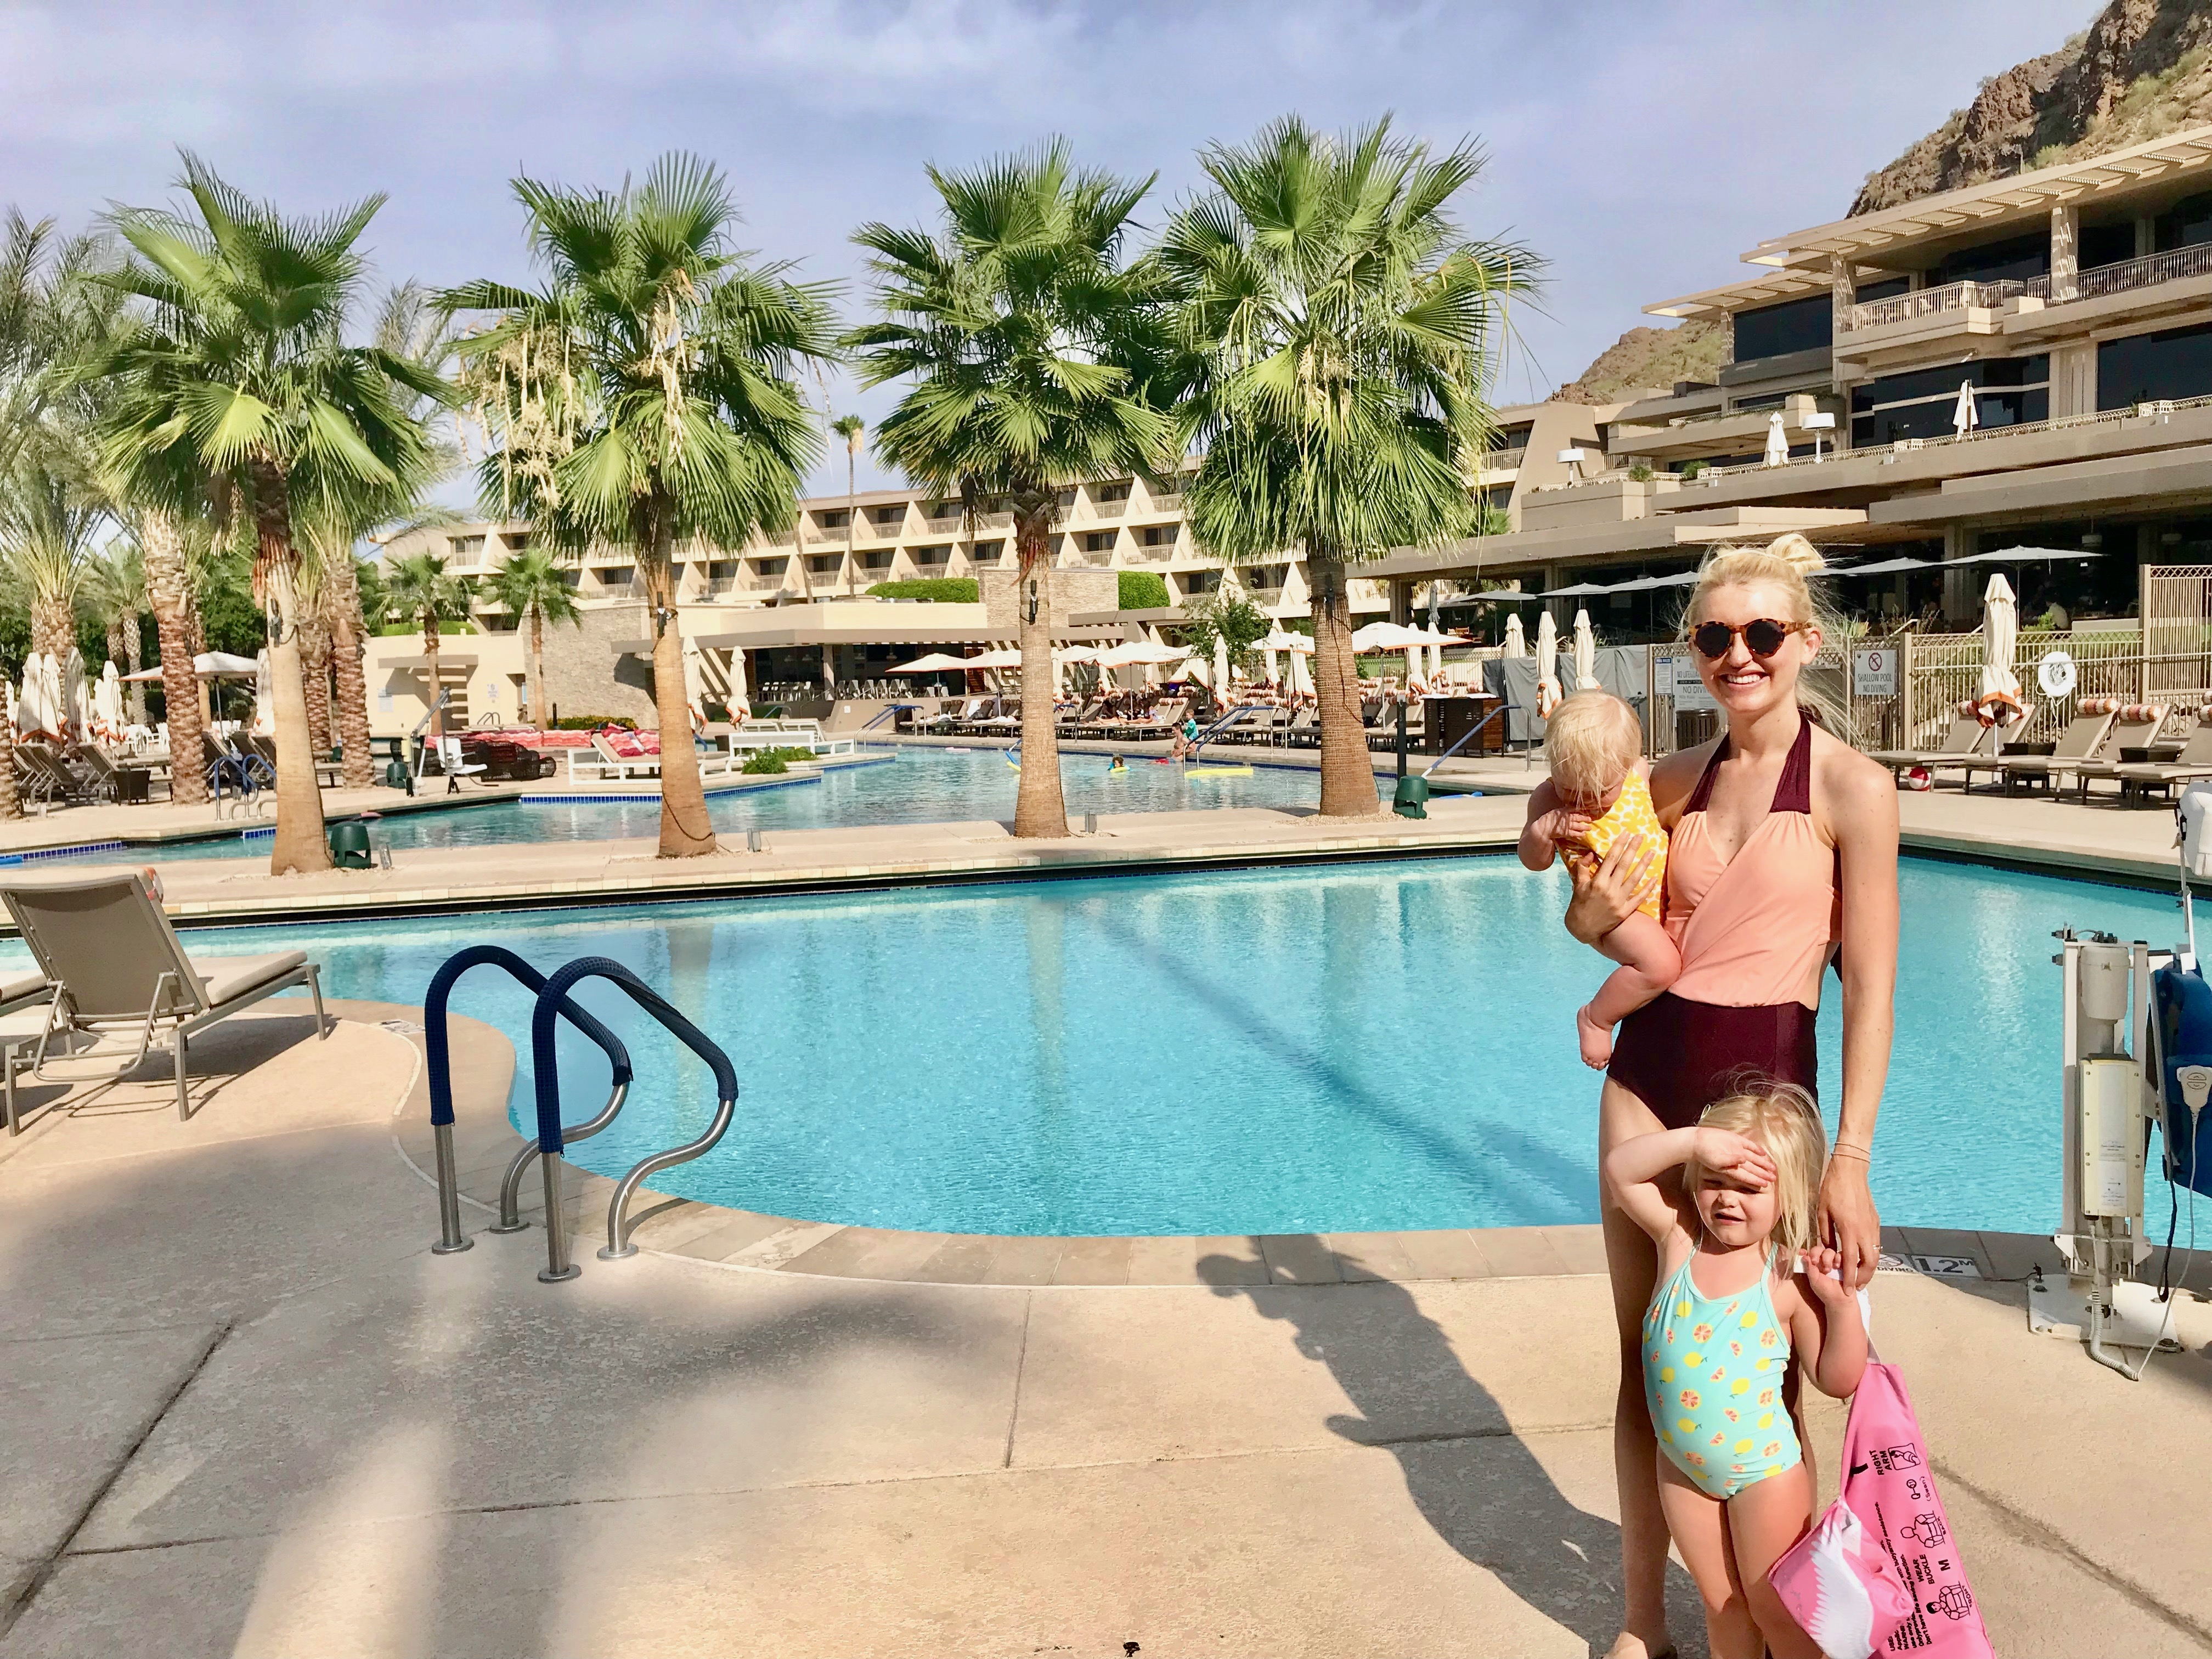 scottsdale arizona getaway (and guide!)